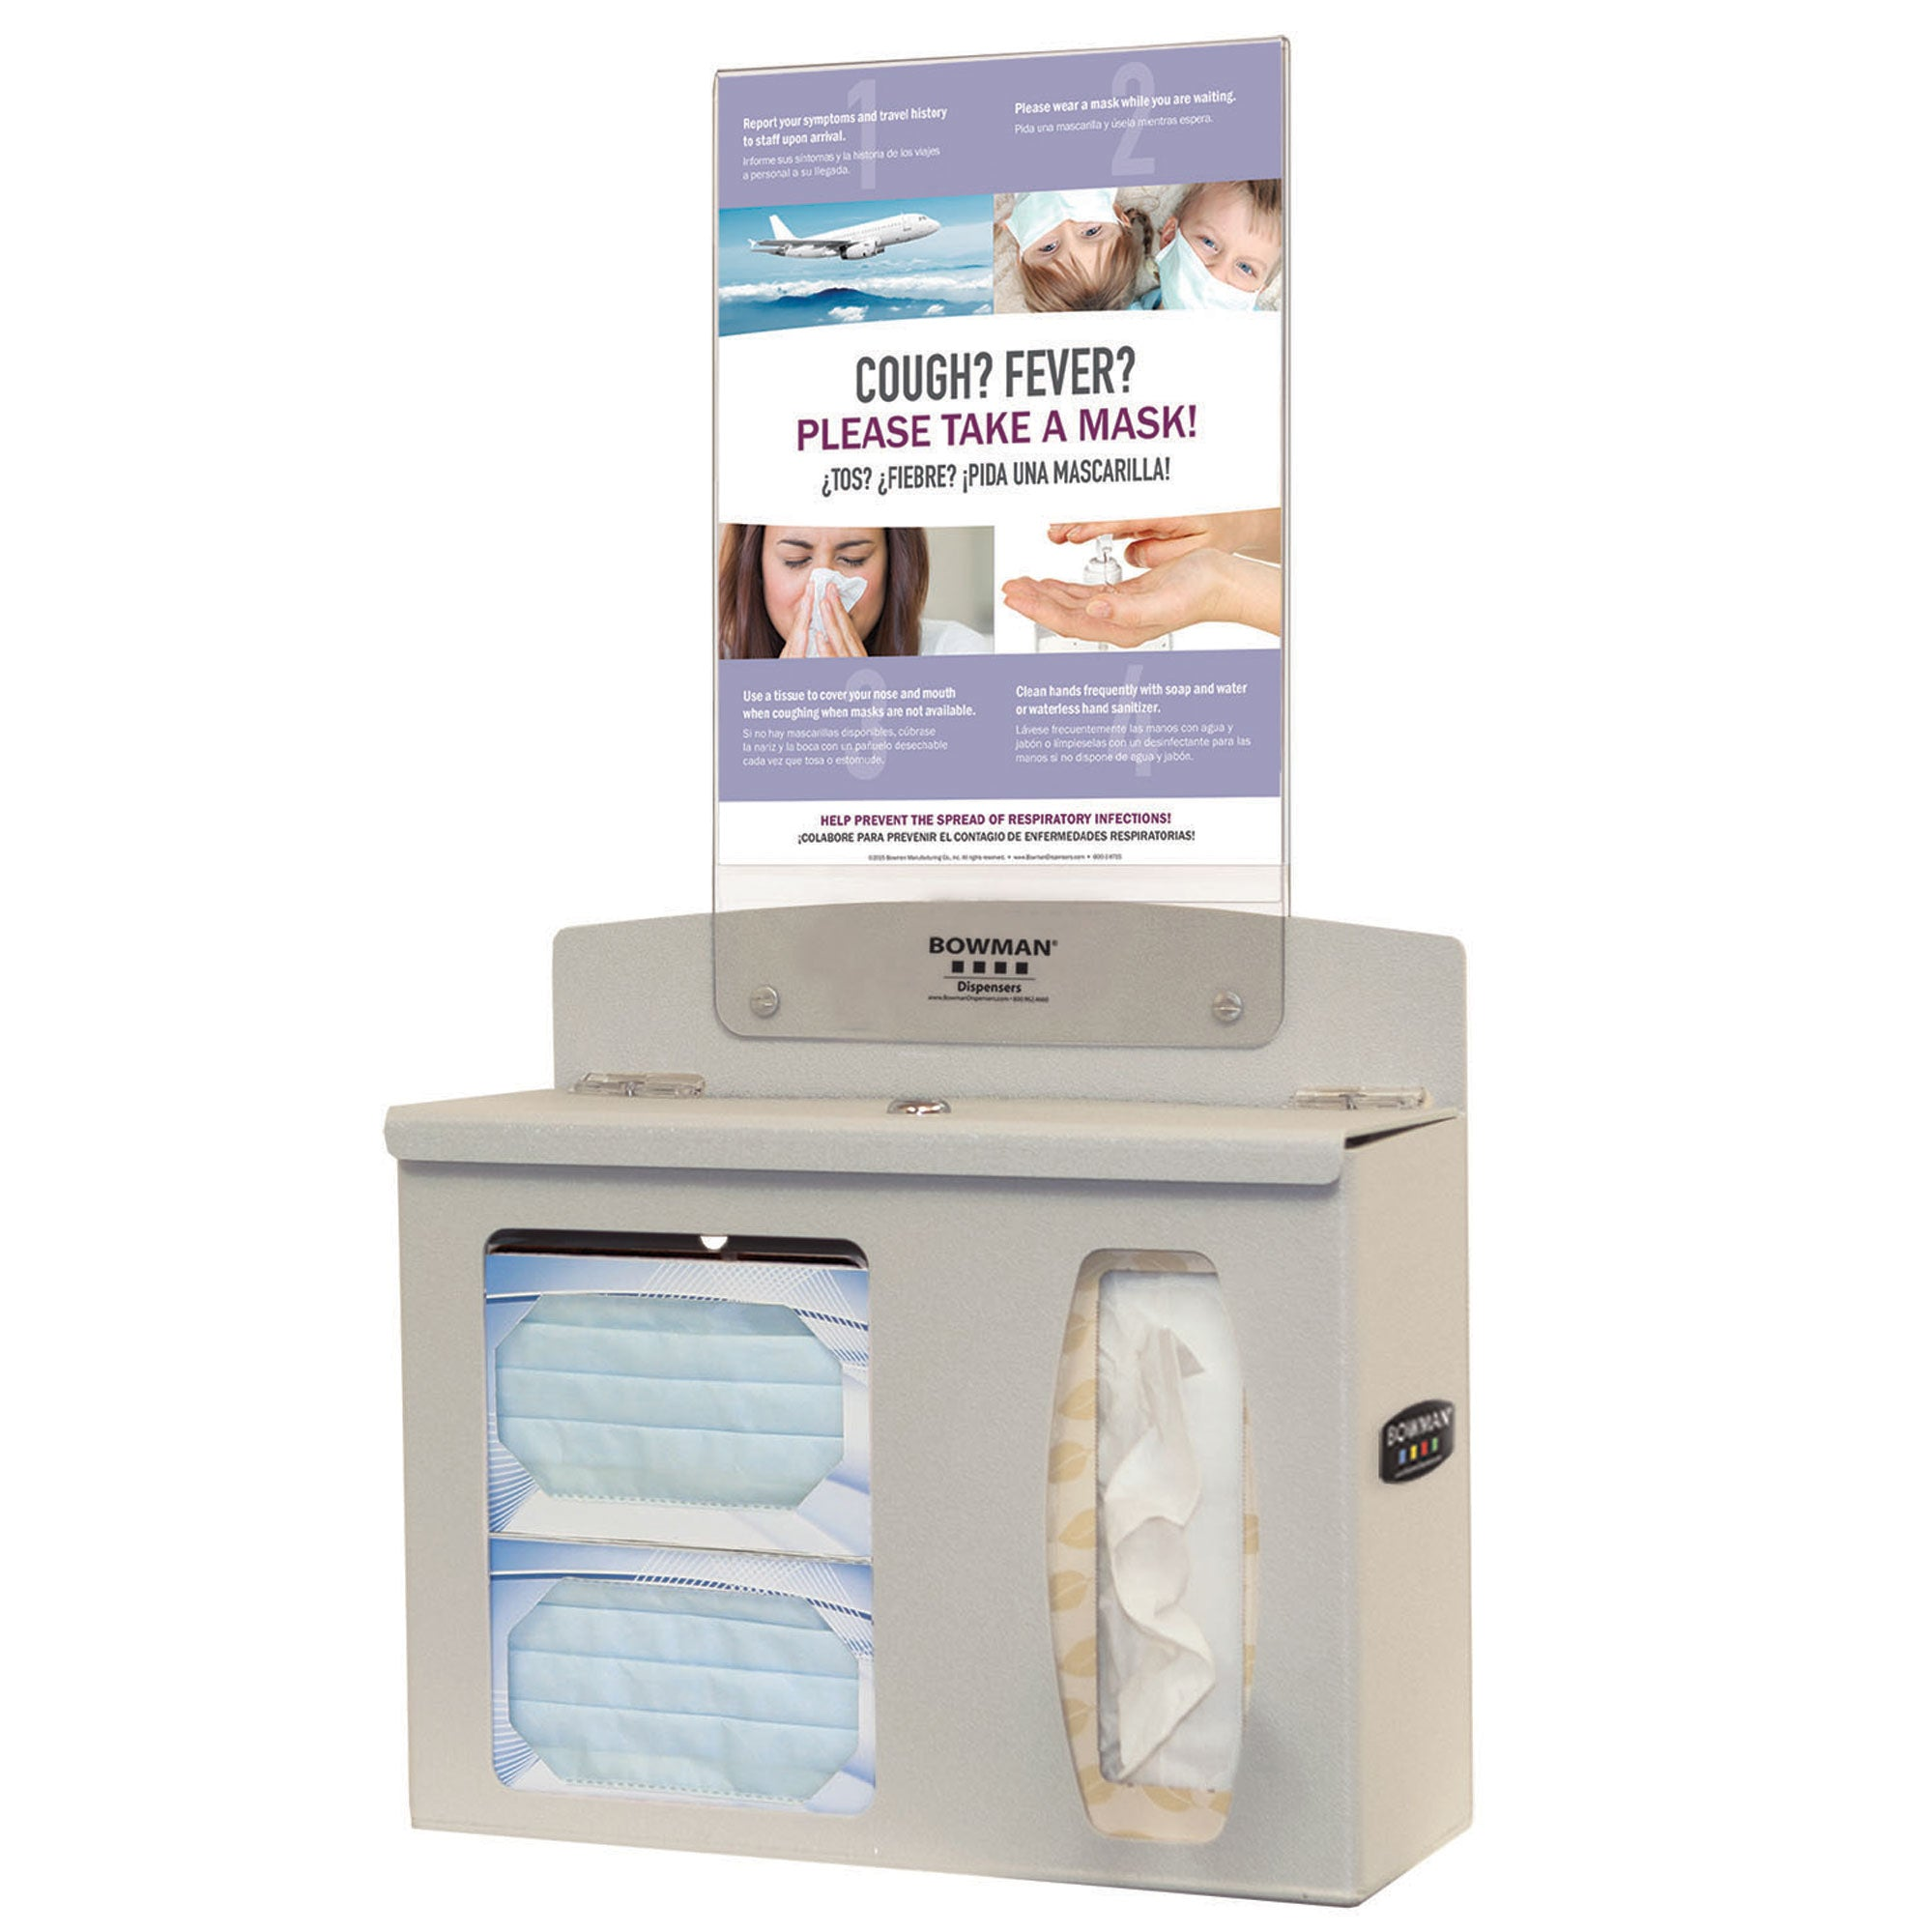 Bowman ABS Hygiene Center without Sanitizer and with Sign